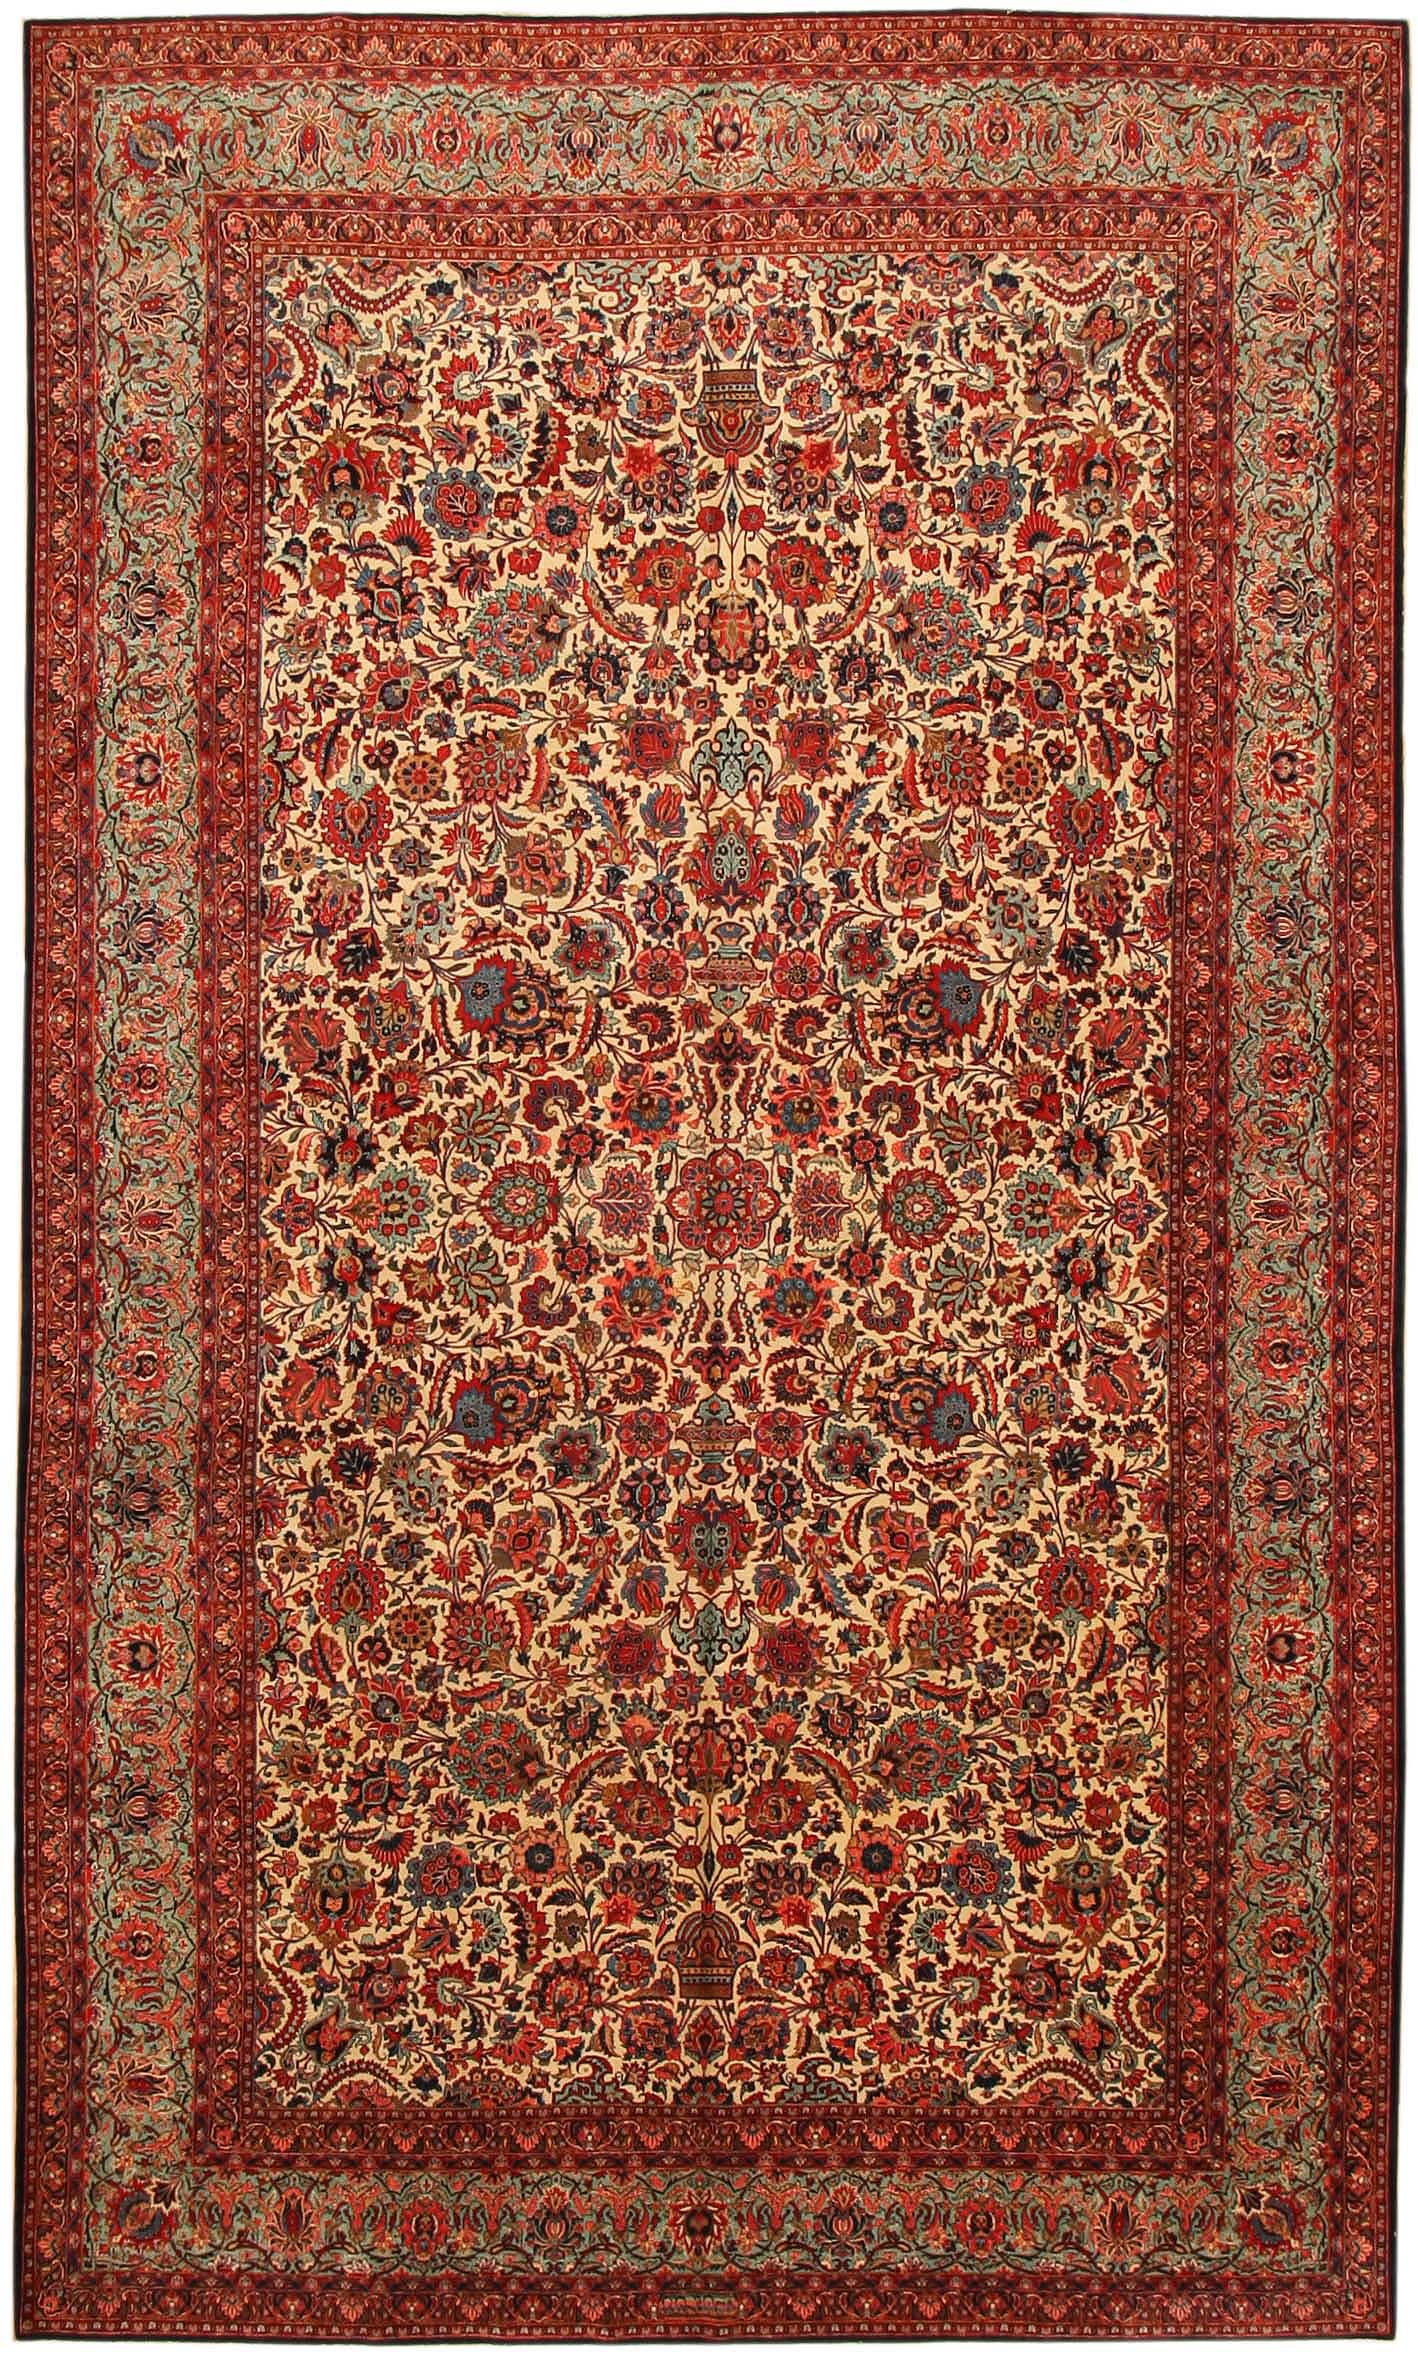 Antique kashan persian rug 43599 for sale for Cheap persian rugs nyc